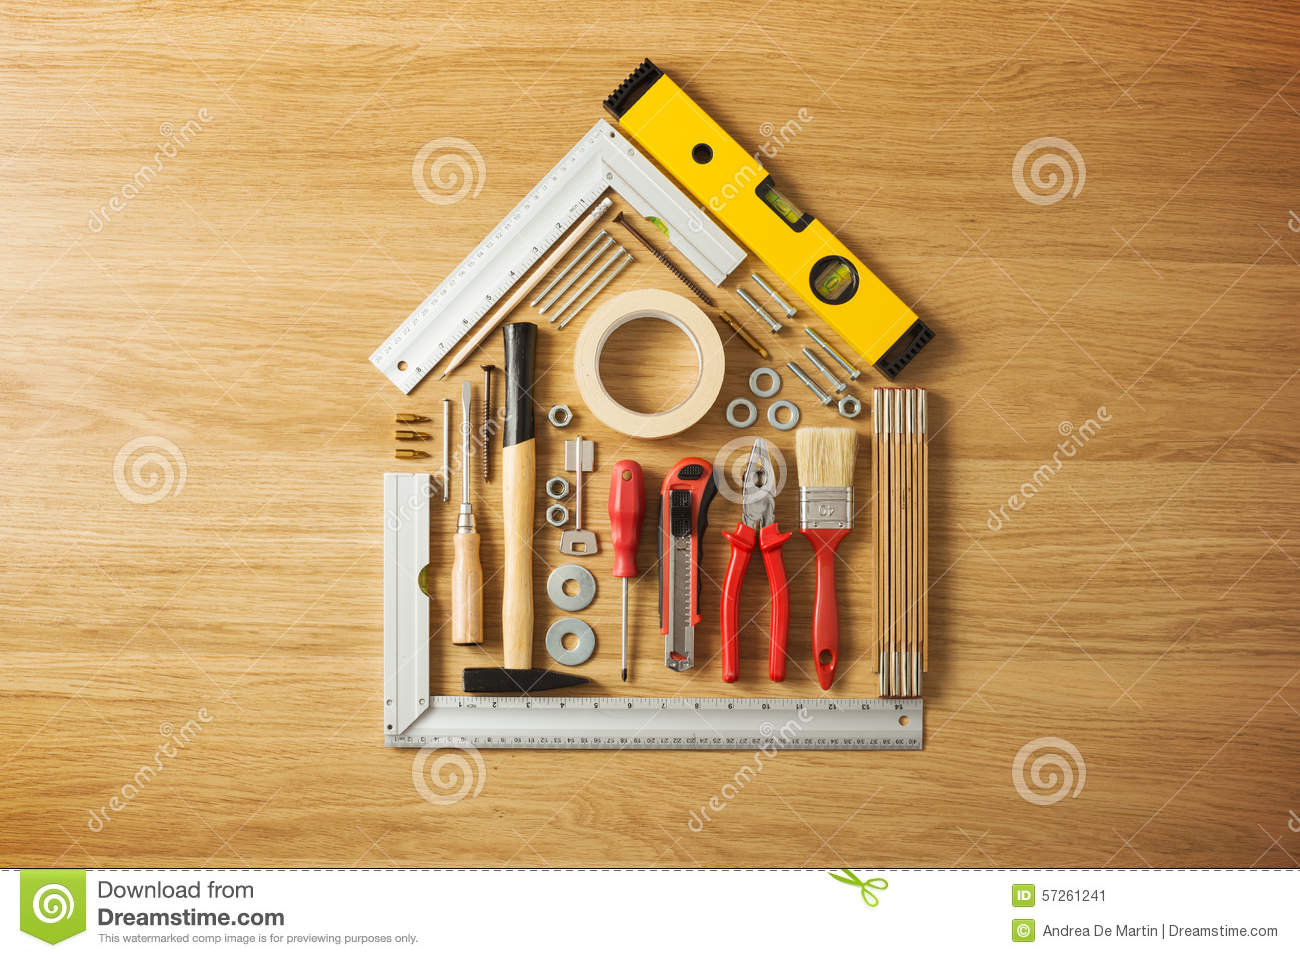 Do it yourself and home renovation tools. Do It Yourself And Home Renovation Tools Stock Photo   Image  57261241